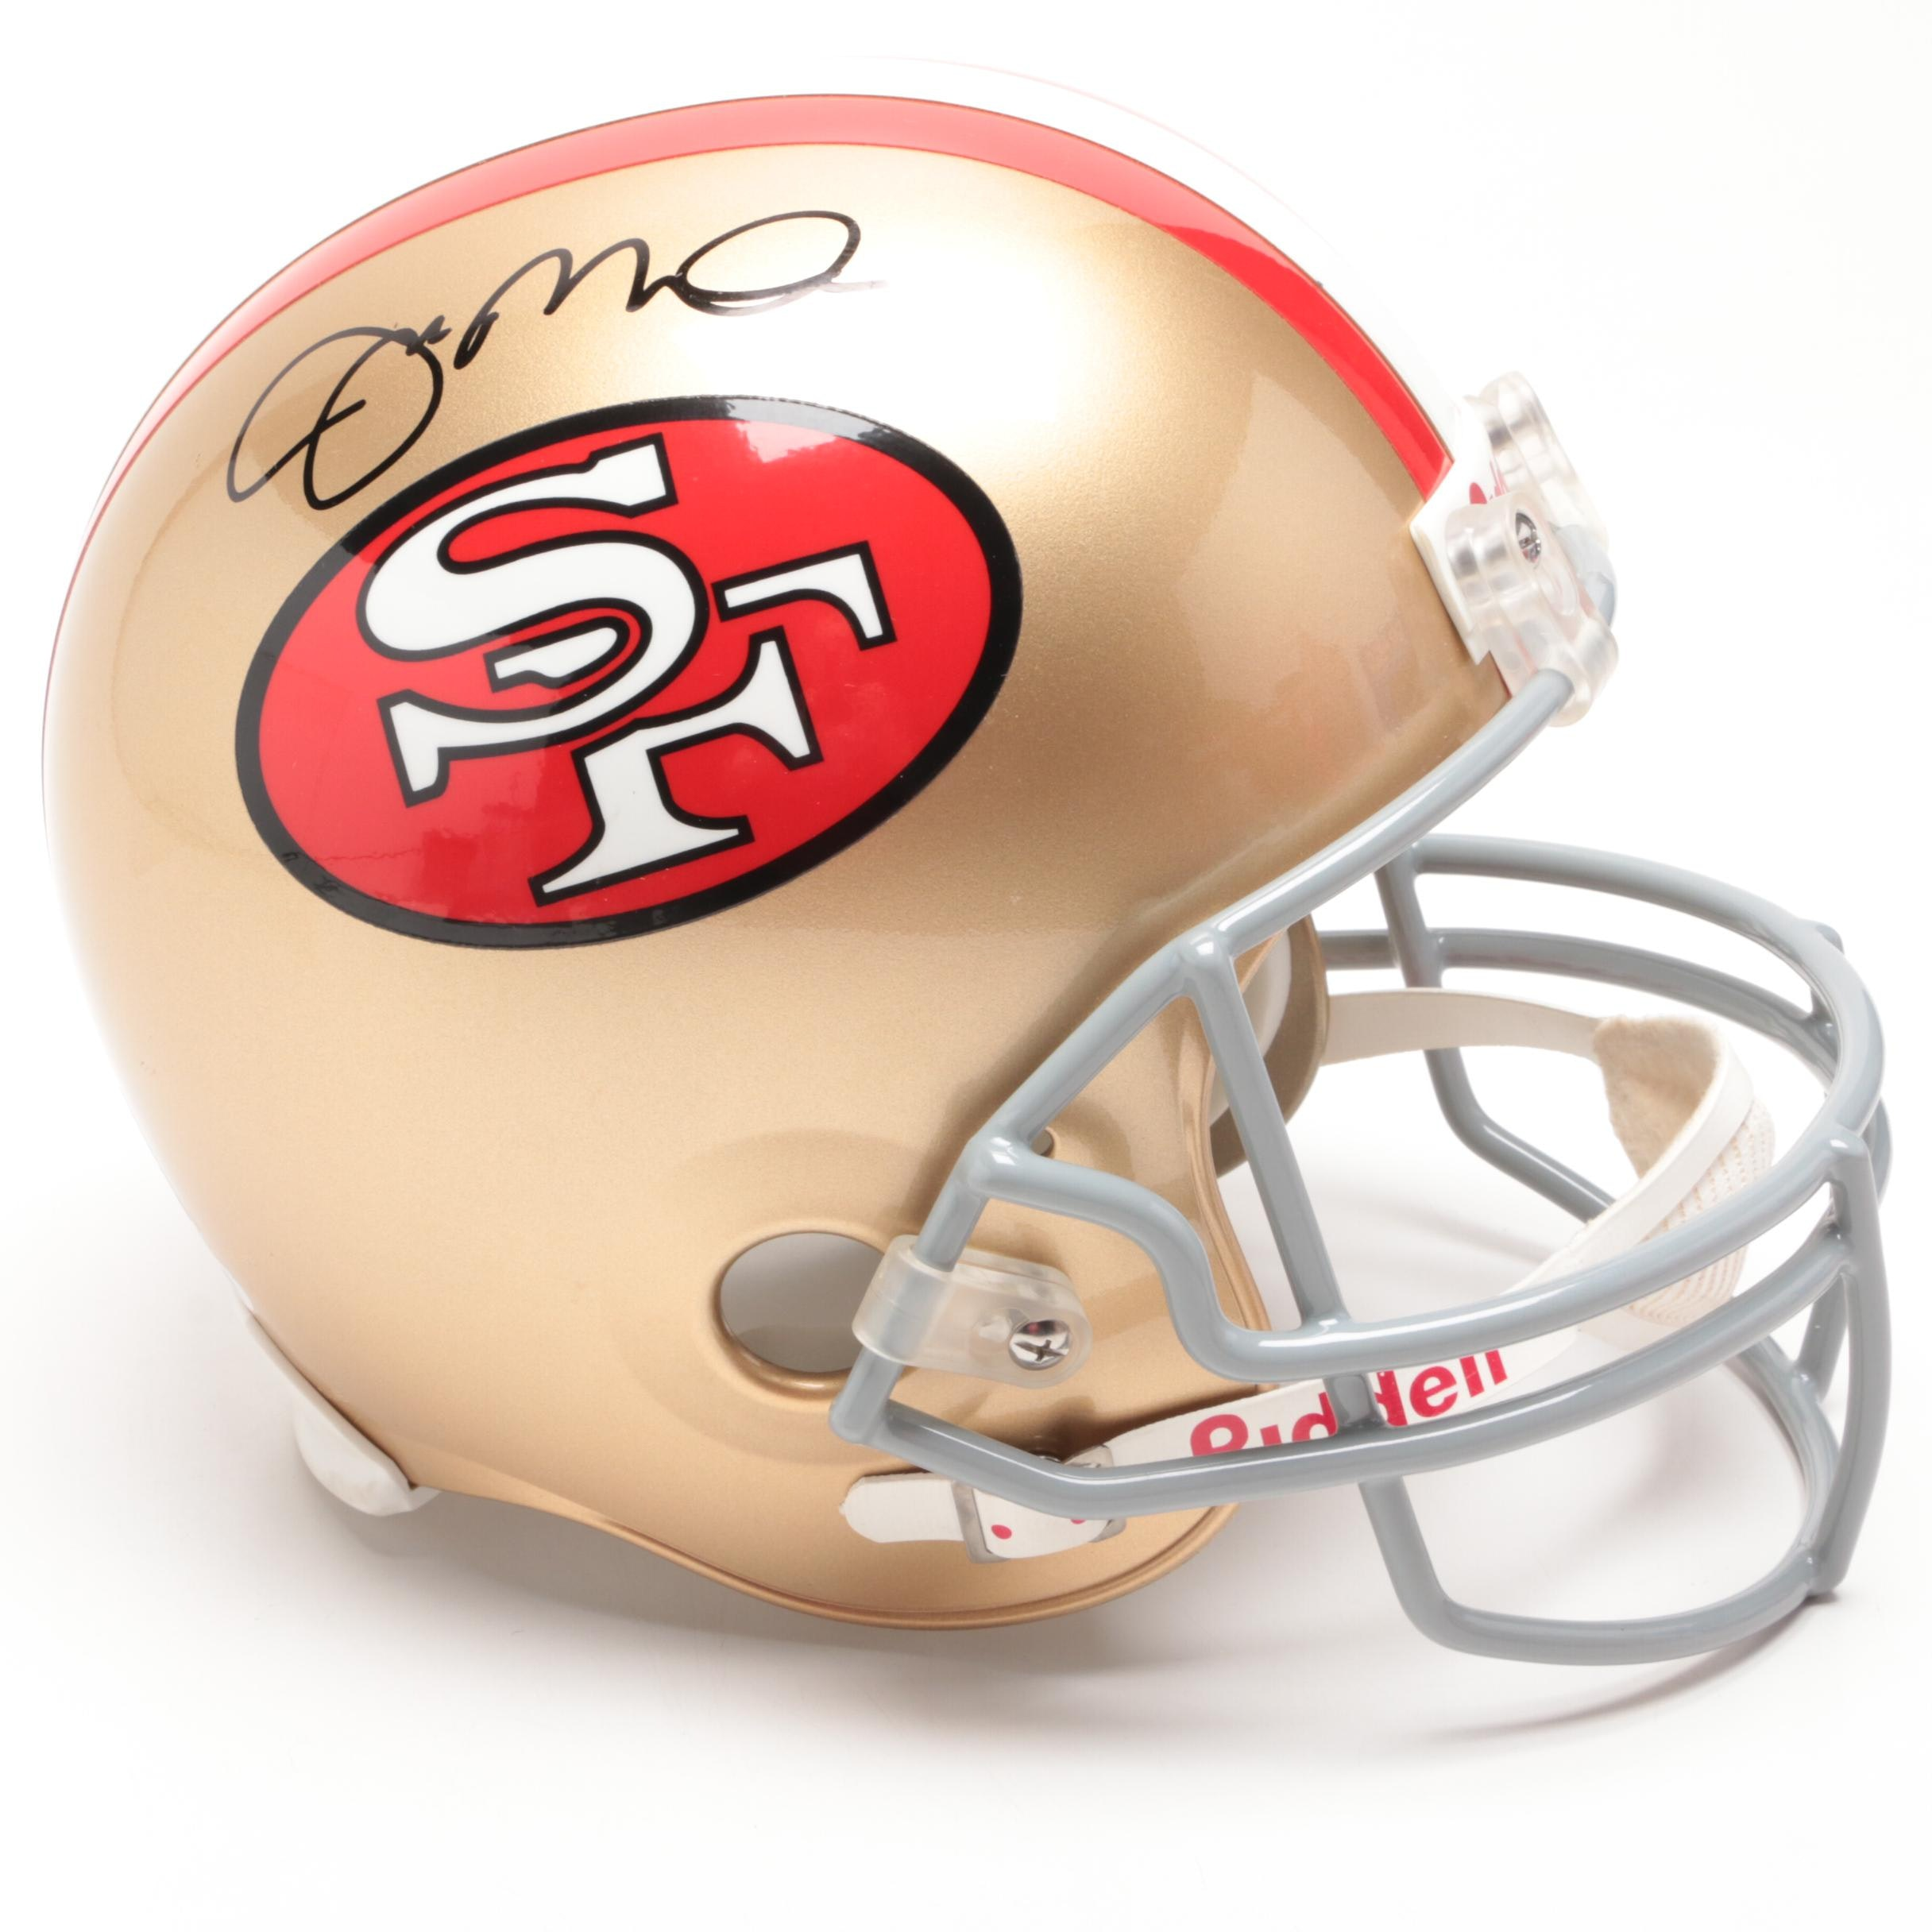 Joe Montana Signed San Fransisco 49ers Football Full-Size Helmet PSA/DNA COA